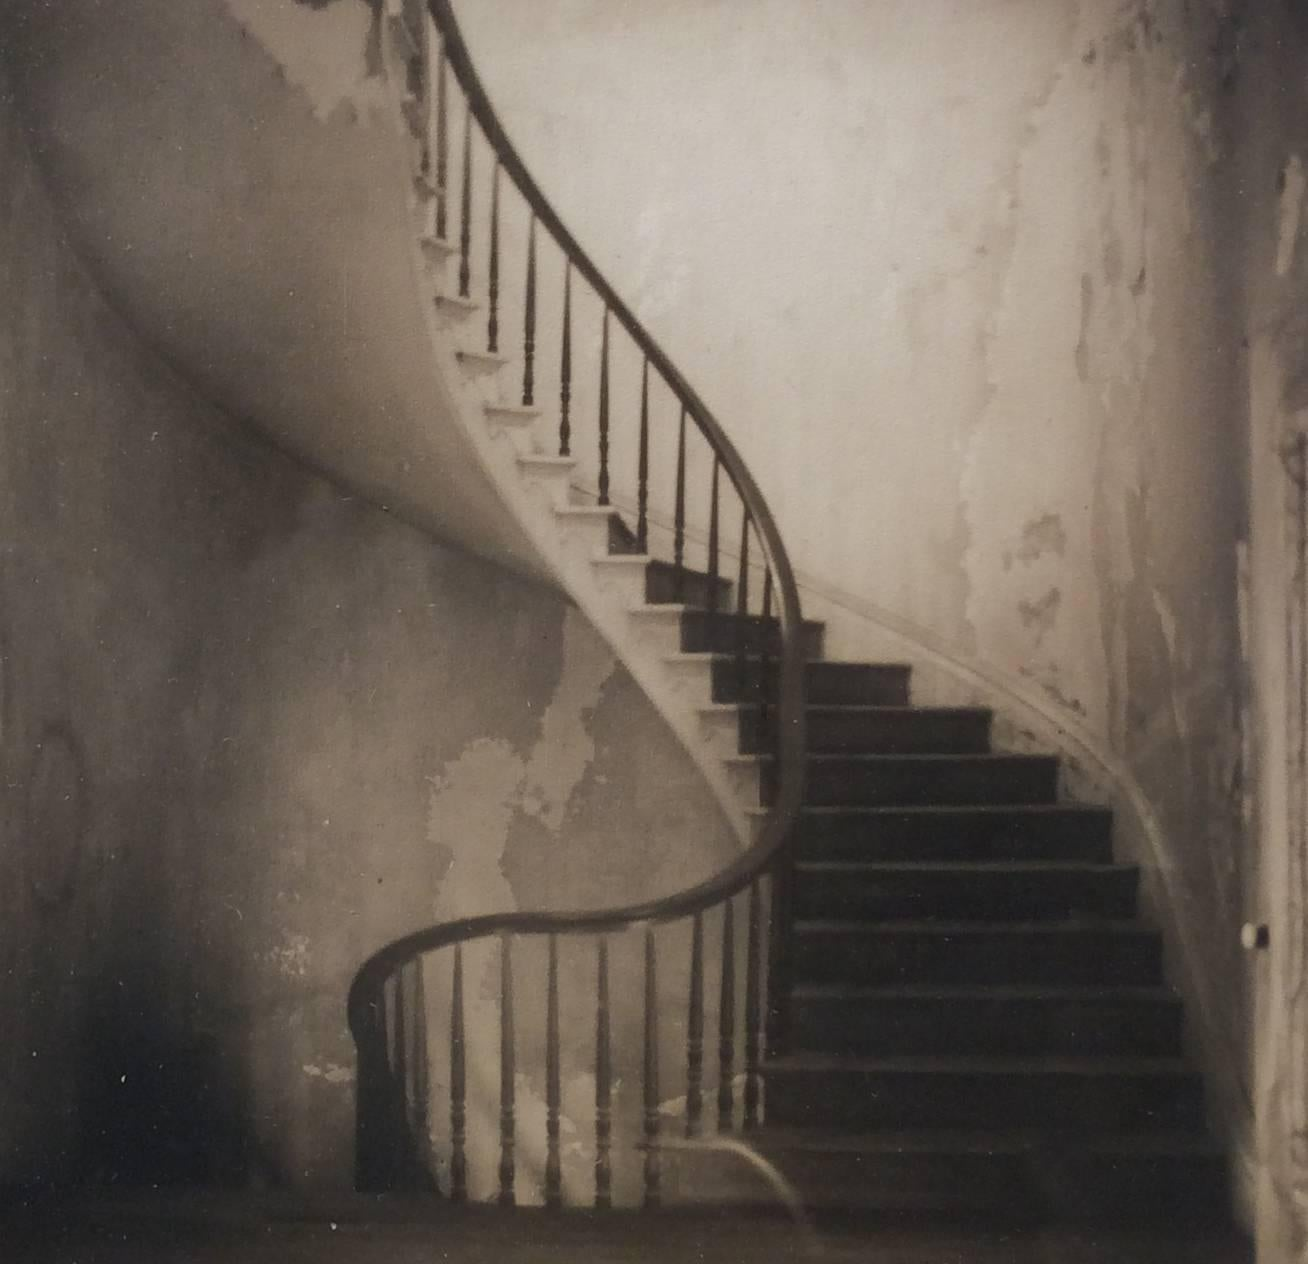 Staircase (Square, Sepia Toned Vintage Photograph of a Spiral Staircase)